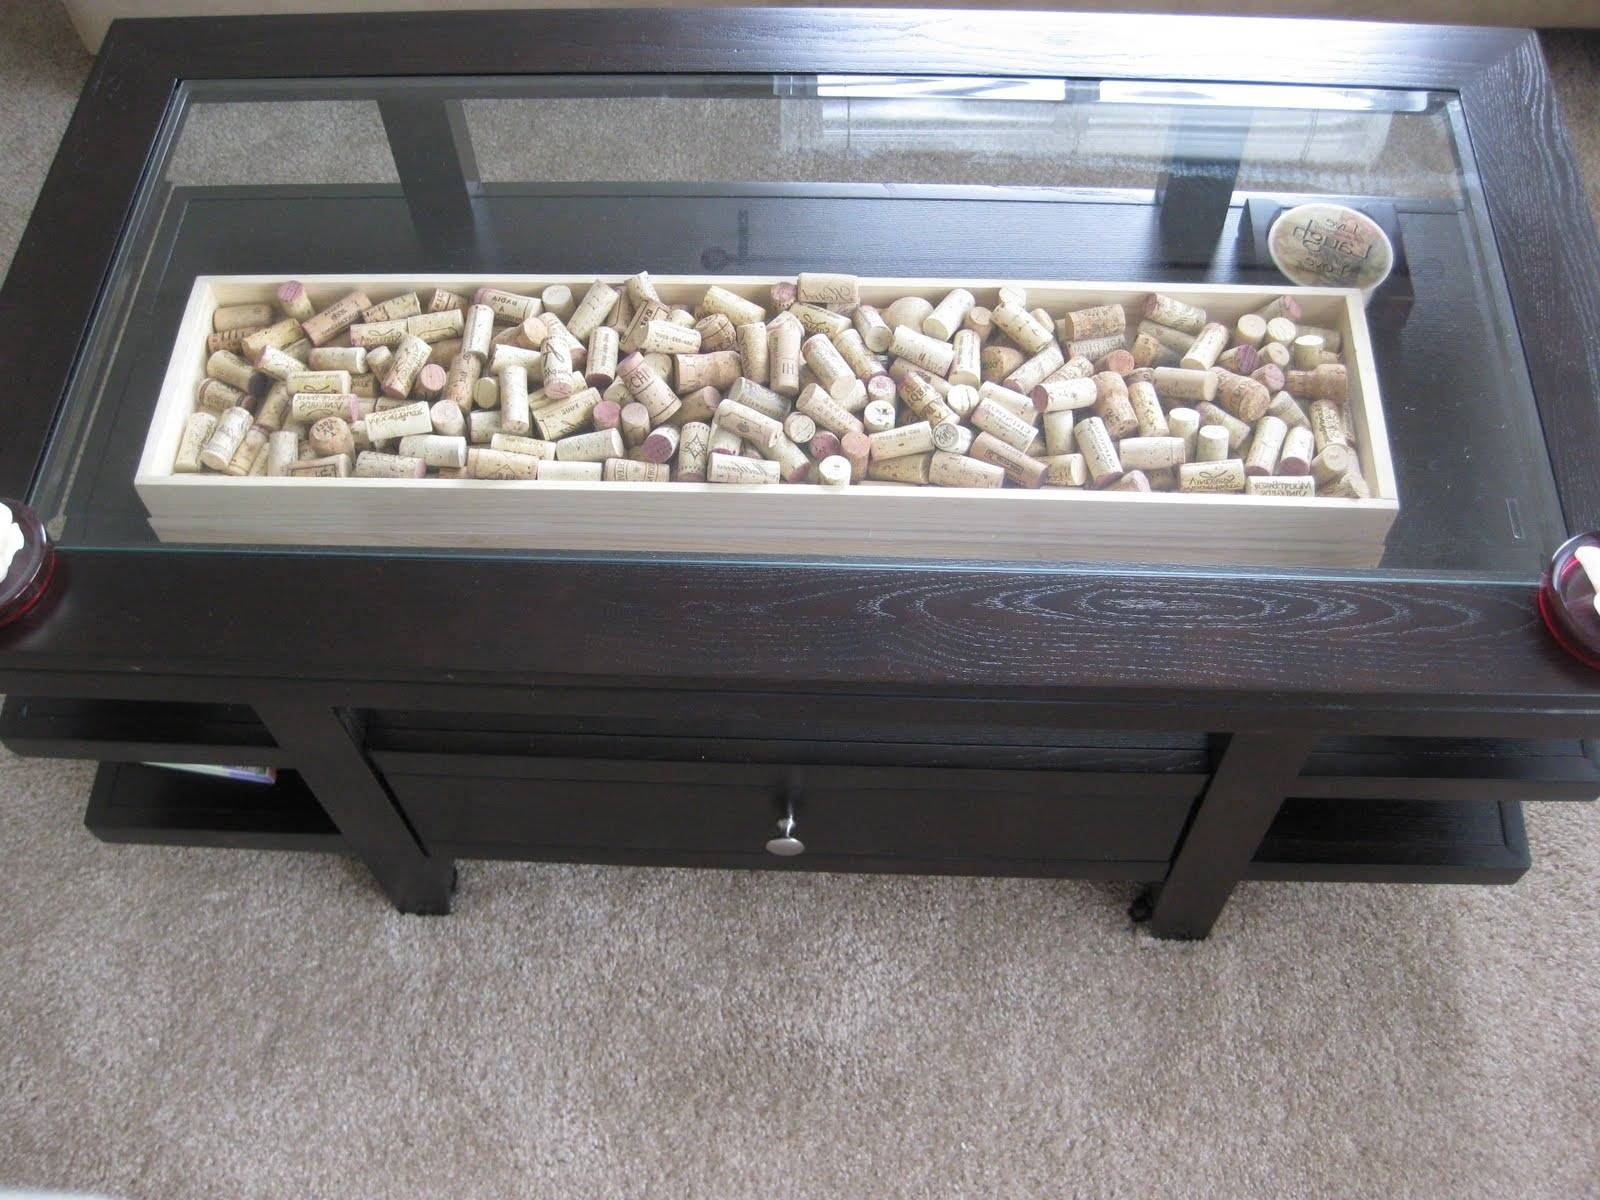 Glass Top Display Coffee Table With Drawers - Jericho Mafjar Project pertaining to Coffee Tables With Glass Top Display Drawer (Image 26 of 30)